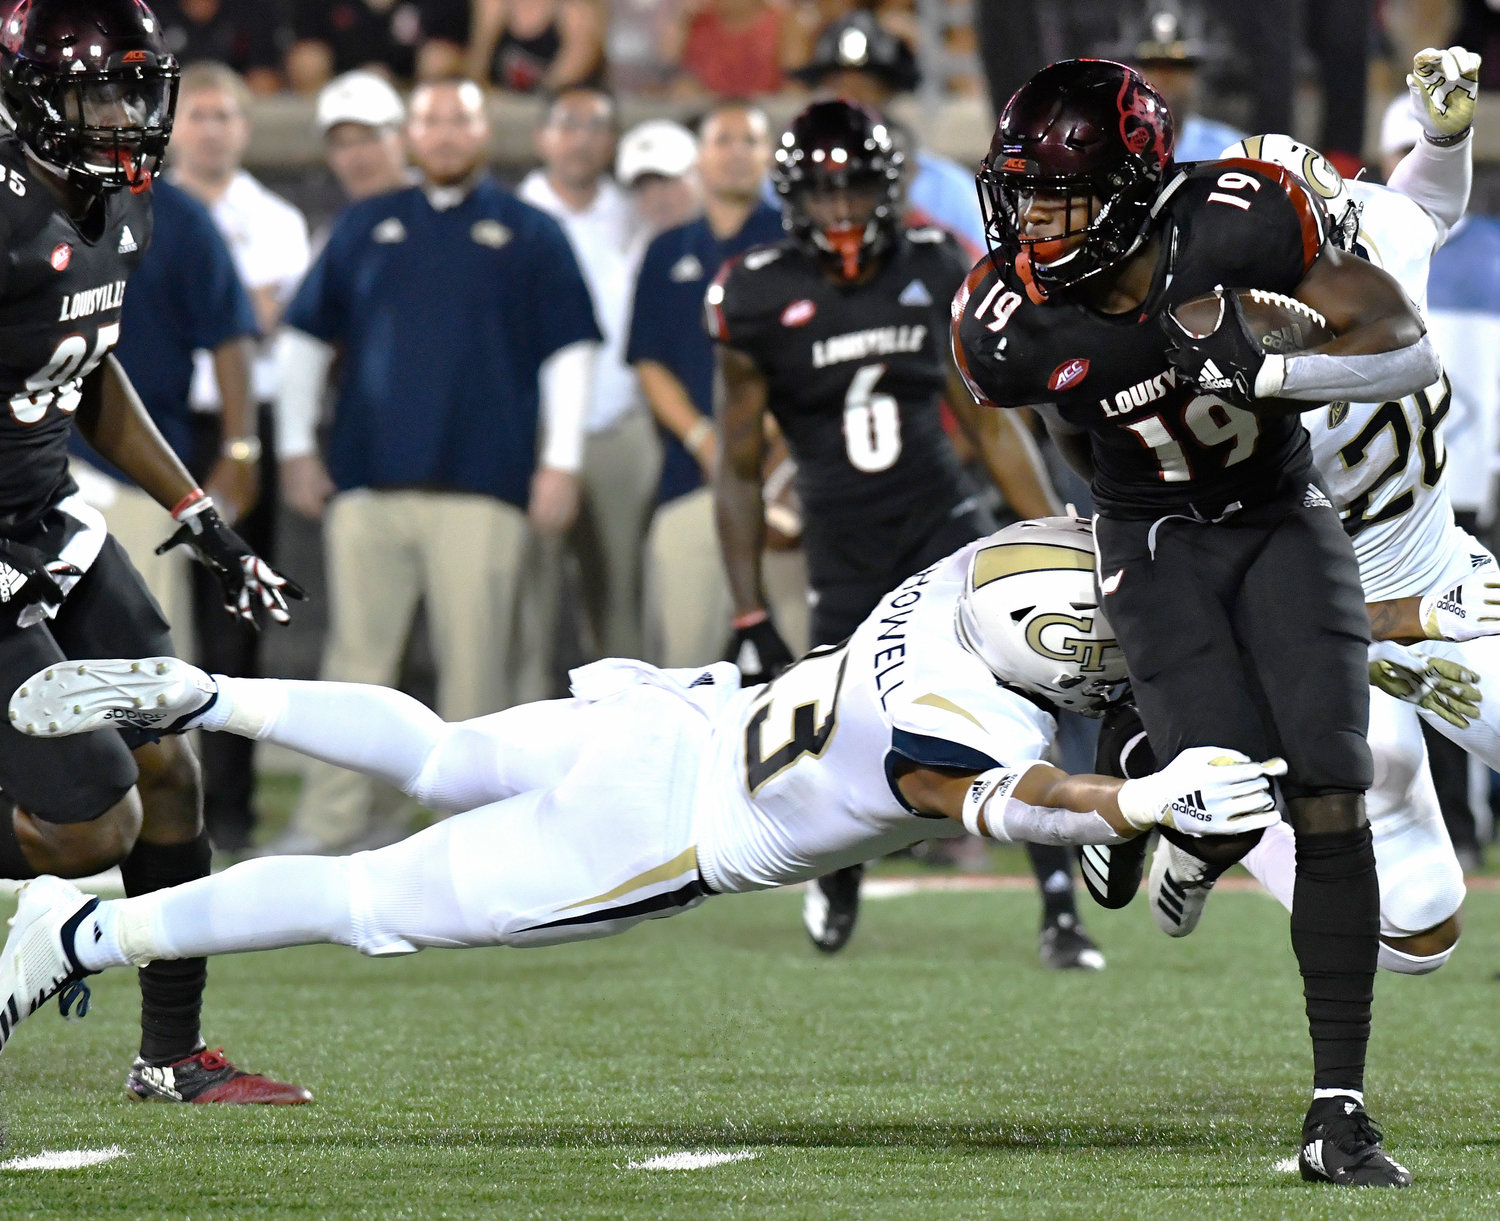 Georgia Tech defensive back and former Purple Hurricane Avery Showell (13) attempts a diving tackle on Louisville running back Hassan Hall (19) during the second half of an NCAA college football game Friday in Louisville, Kentucky.